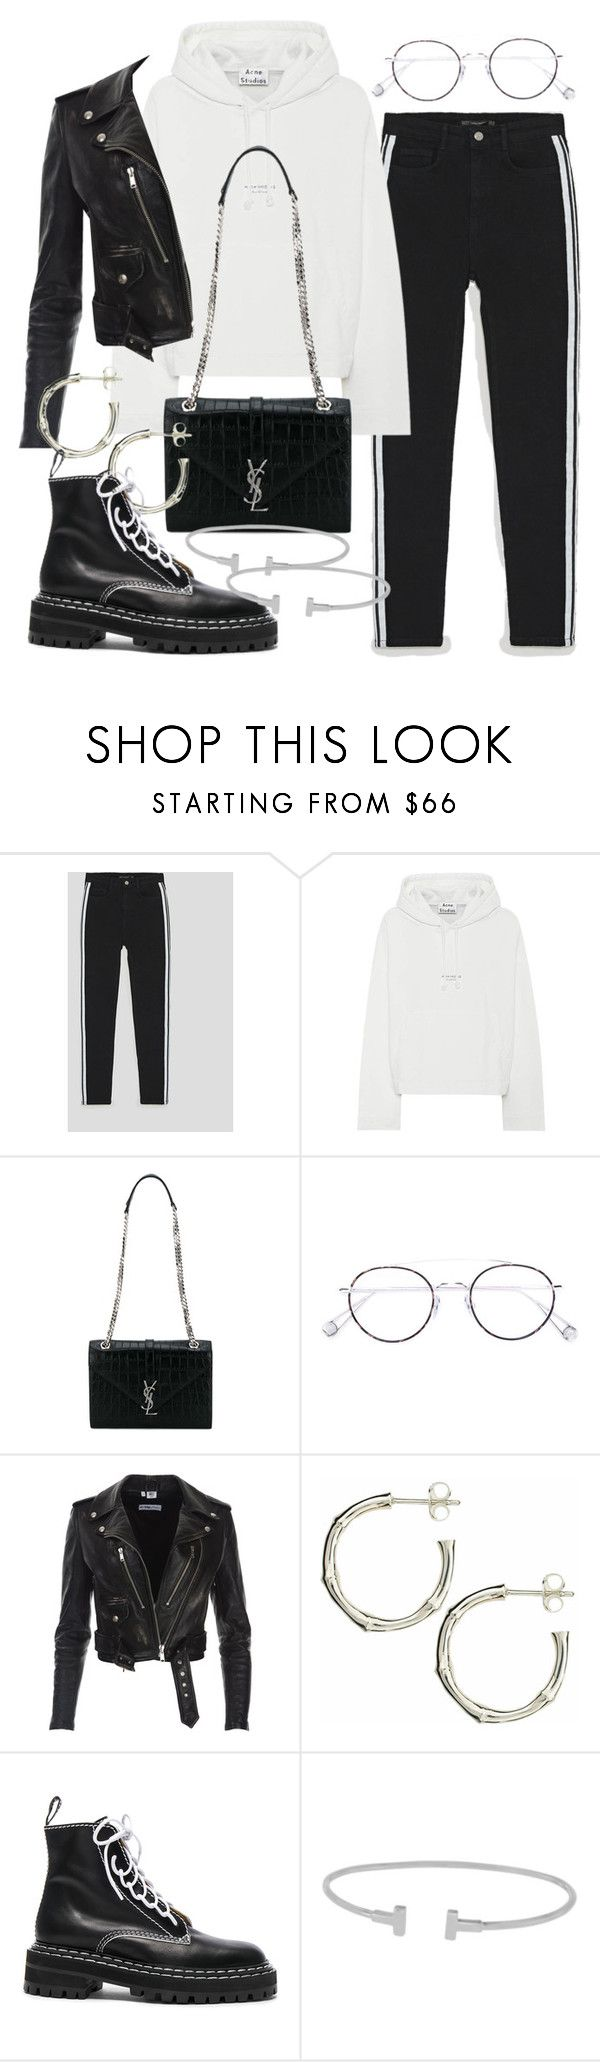 """""""Untitled #2689"""" by mariie0h ❤ liked on Polyvore featuring Acne Studios, Yves Saint Laurent, Ahlem, Dinny Hall, Proenza Schouler and Tiffany & Co."""